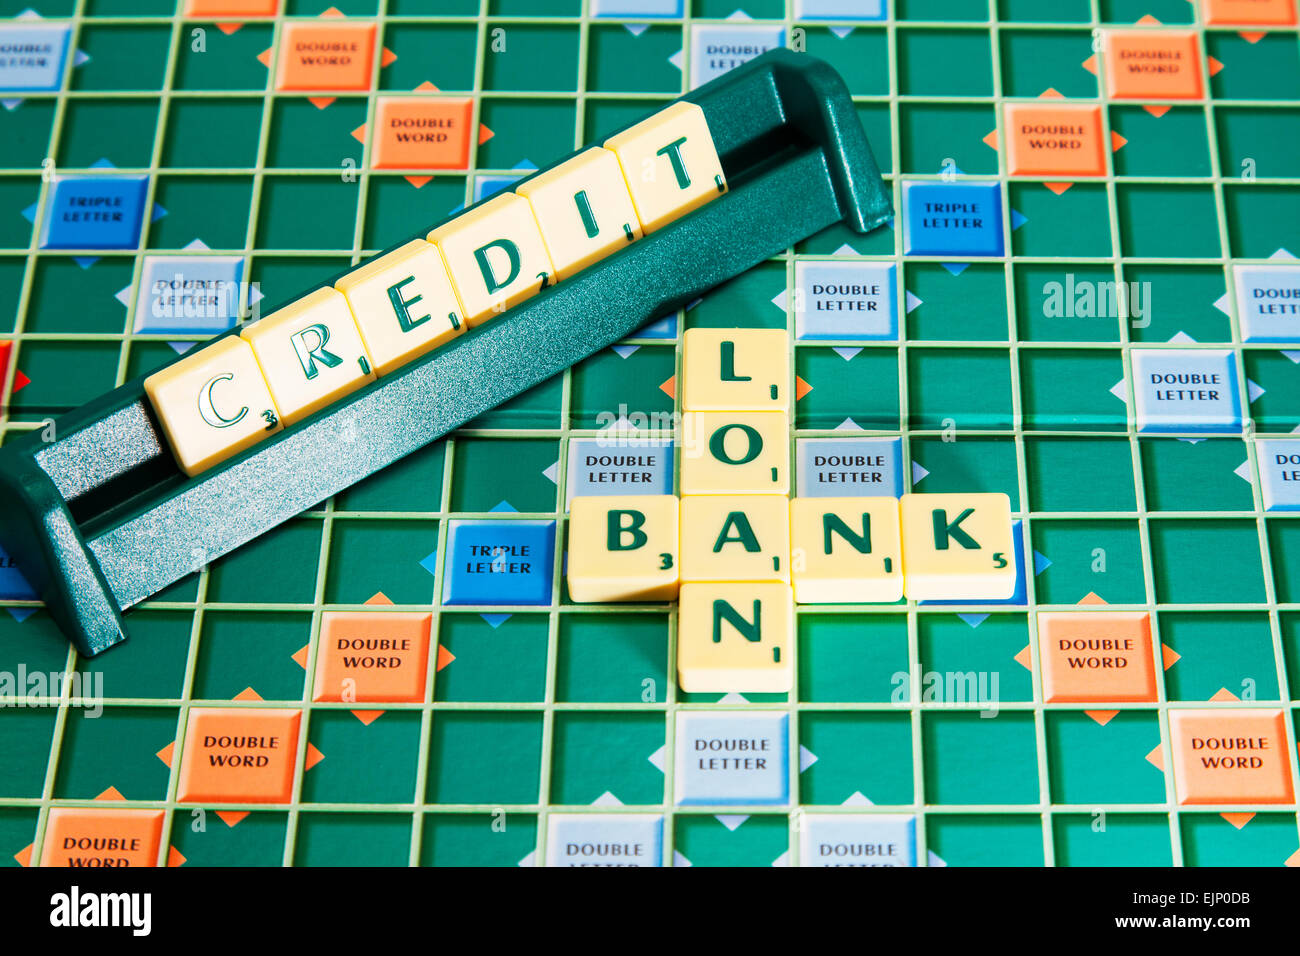 bank loan credit loans debt debts words using scrabble tiles to illustrate spelling spell out - Stock Image